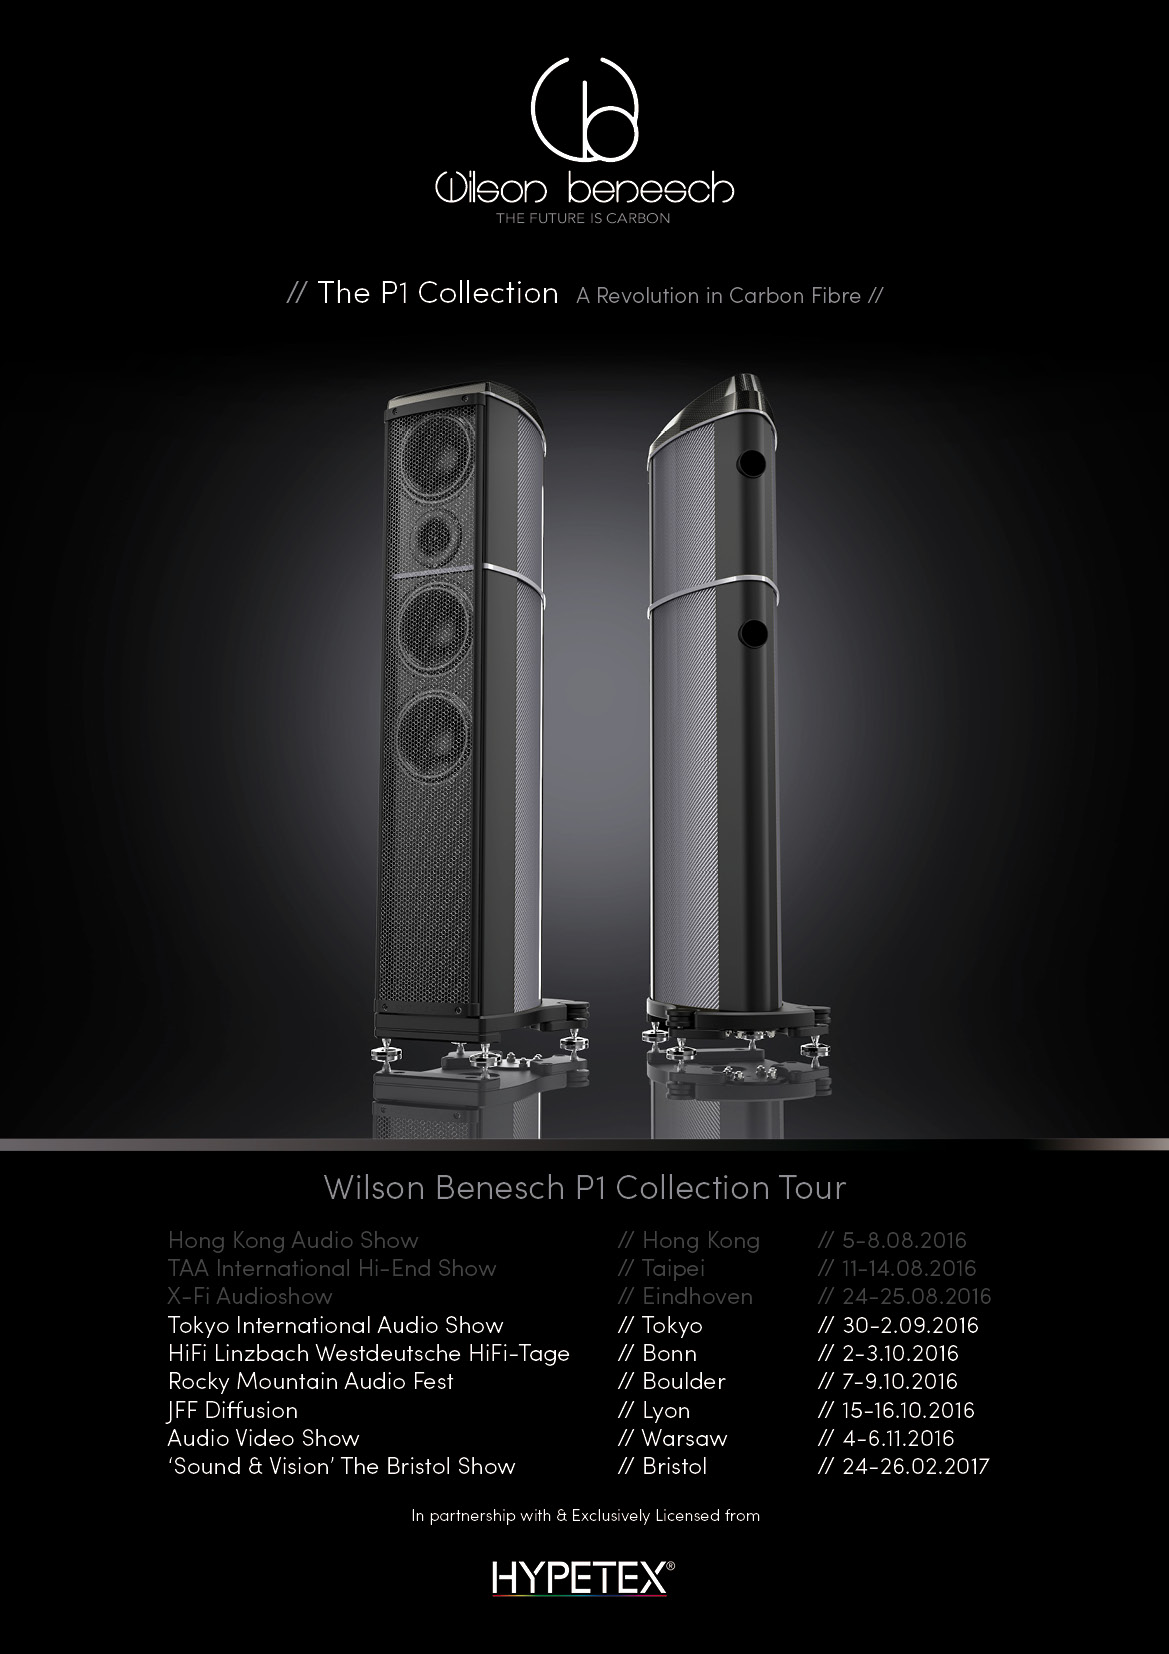 Geometry Series P1 Collection Tour Poster showing A.C.T. One Evolution P1 Loudspeaker finished in Silverstone Hypetex Coloured Carbon Fibre